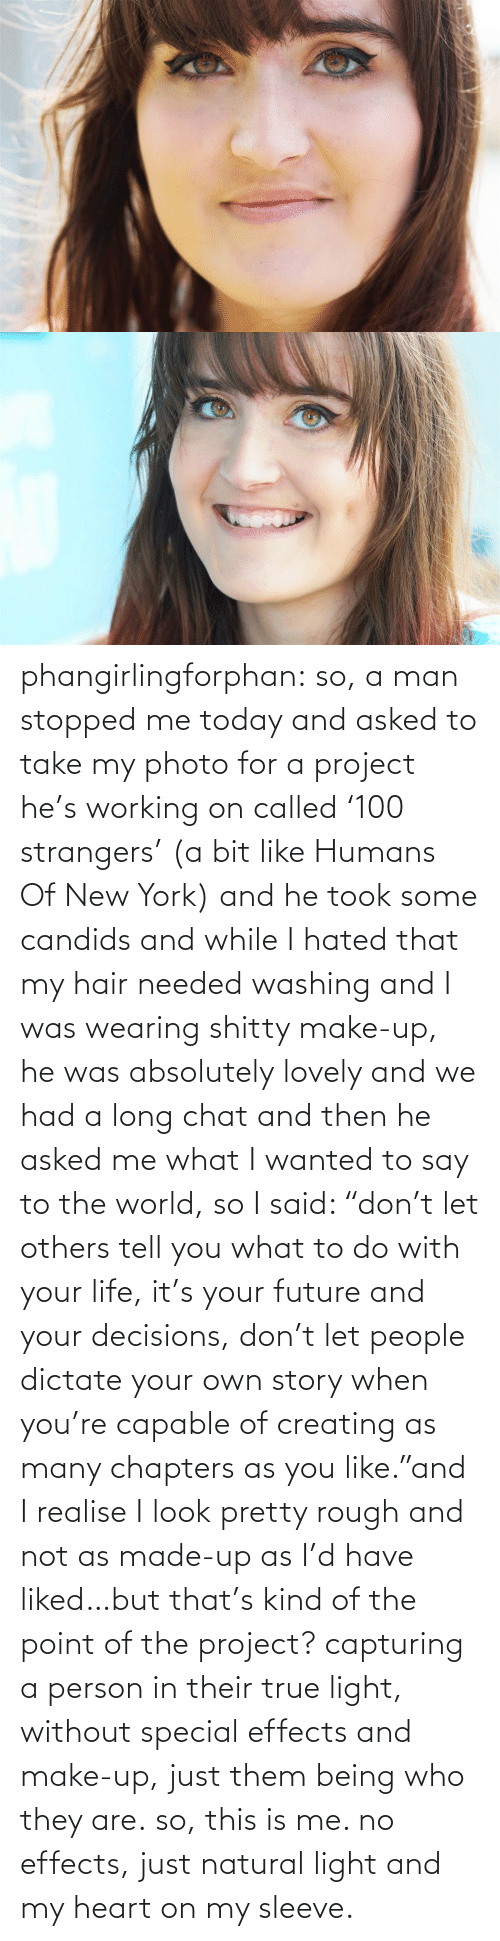 """Future, Life, and New York: phangirlingforphan:  so, a man stopped me today and asked to take my photo for a project he's working on called '100 strangers' (a bit like Humans Of New York) and he took some candids and while I hated that my hair needed washing and I was wearing shitty make-up, he was absolutely lovely and we had a long chat and then he asked me what I wanted to say to the world, so I said: """"don't let others tell you what to do with your life, it's your future and your decisions, don't let people dictate your own story when you're capable of creating as many chapters as you like.""""and I realise I look pretty rough and not as made-up as I'd have liked…but that's kind of the point of the project? capturing a person in their true light, without special effects and make-up, just them being who they are.so, this is me. no effects, just natural light and my heart on my sleeve."""